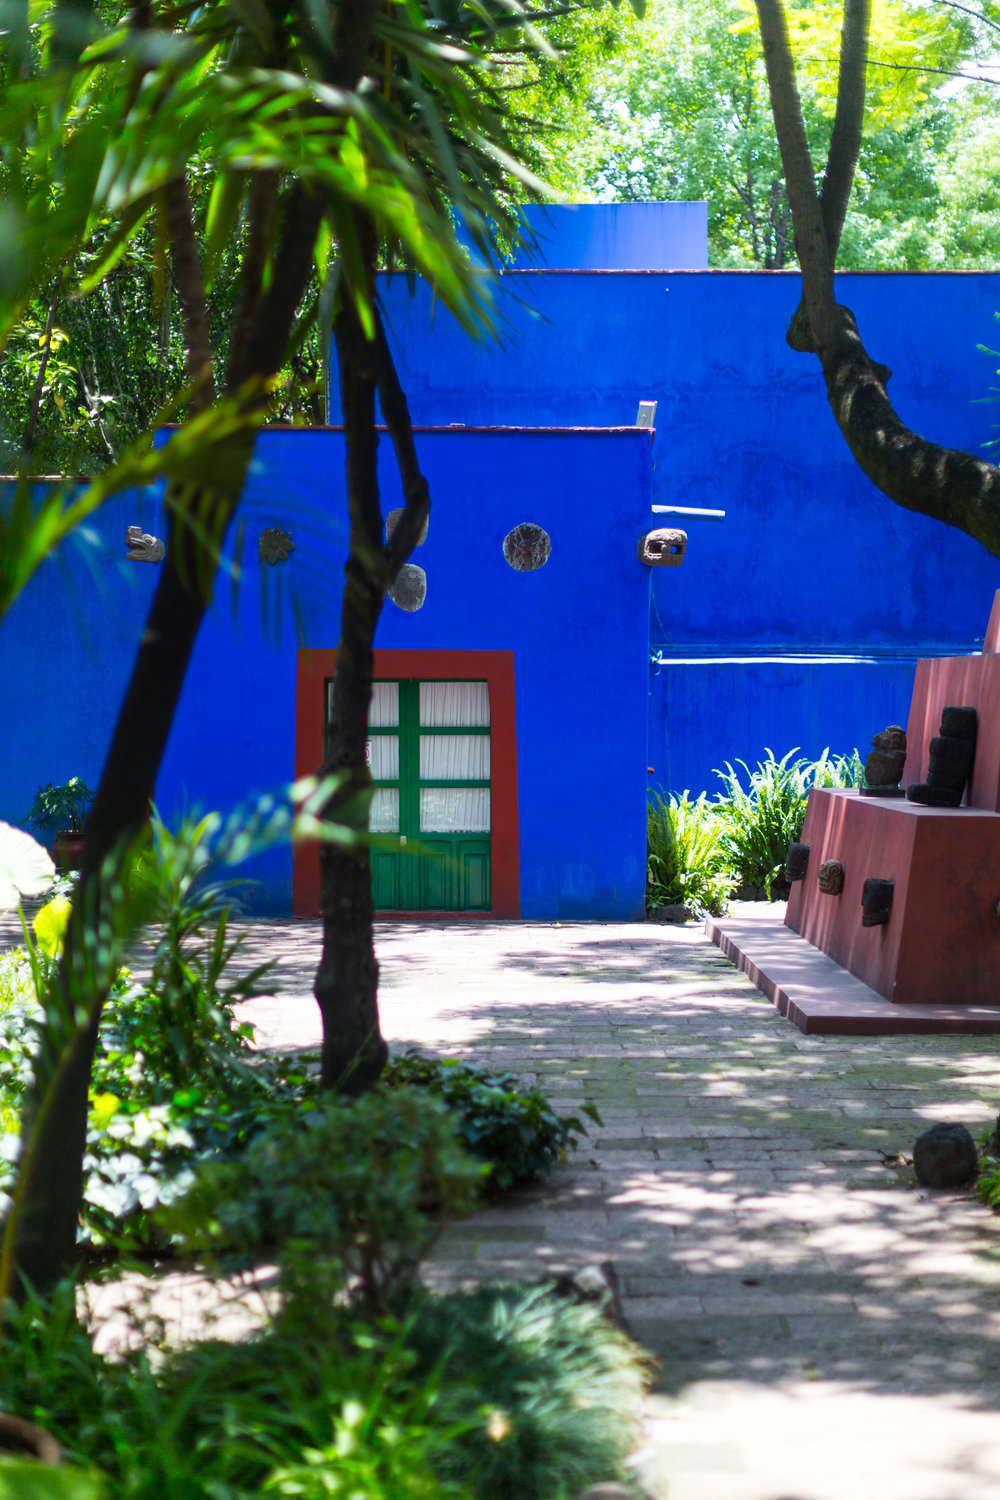 Mexico City Frida Kahlo La Casa Azul-5.jpg